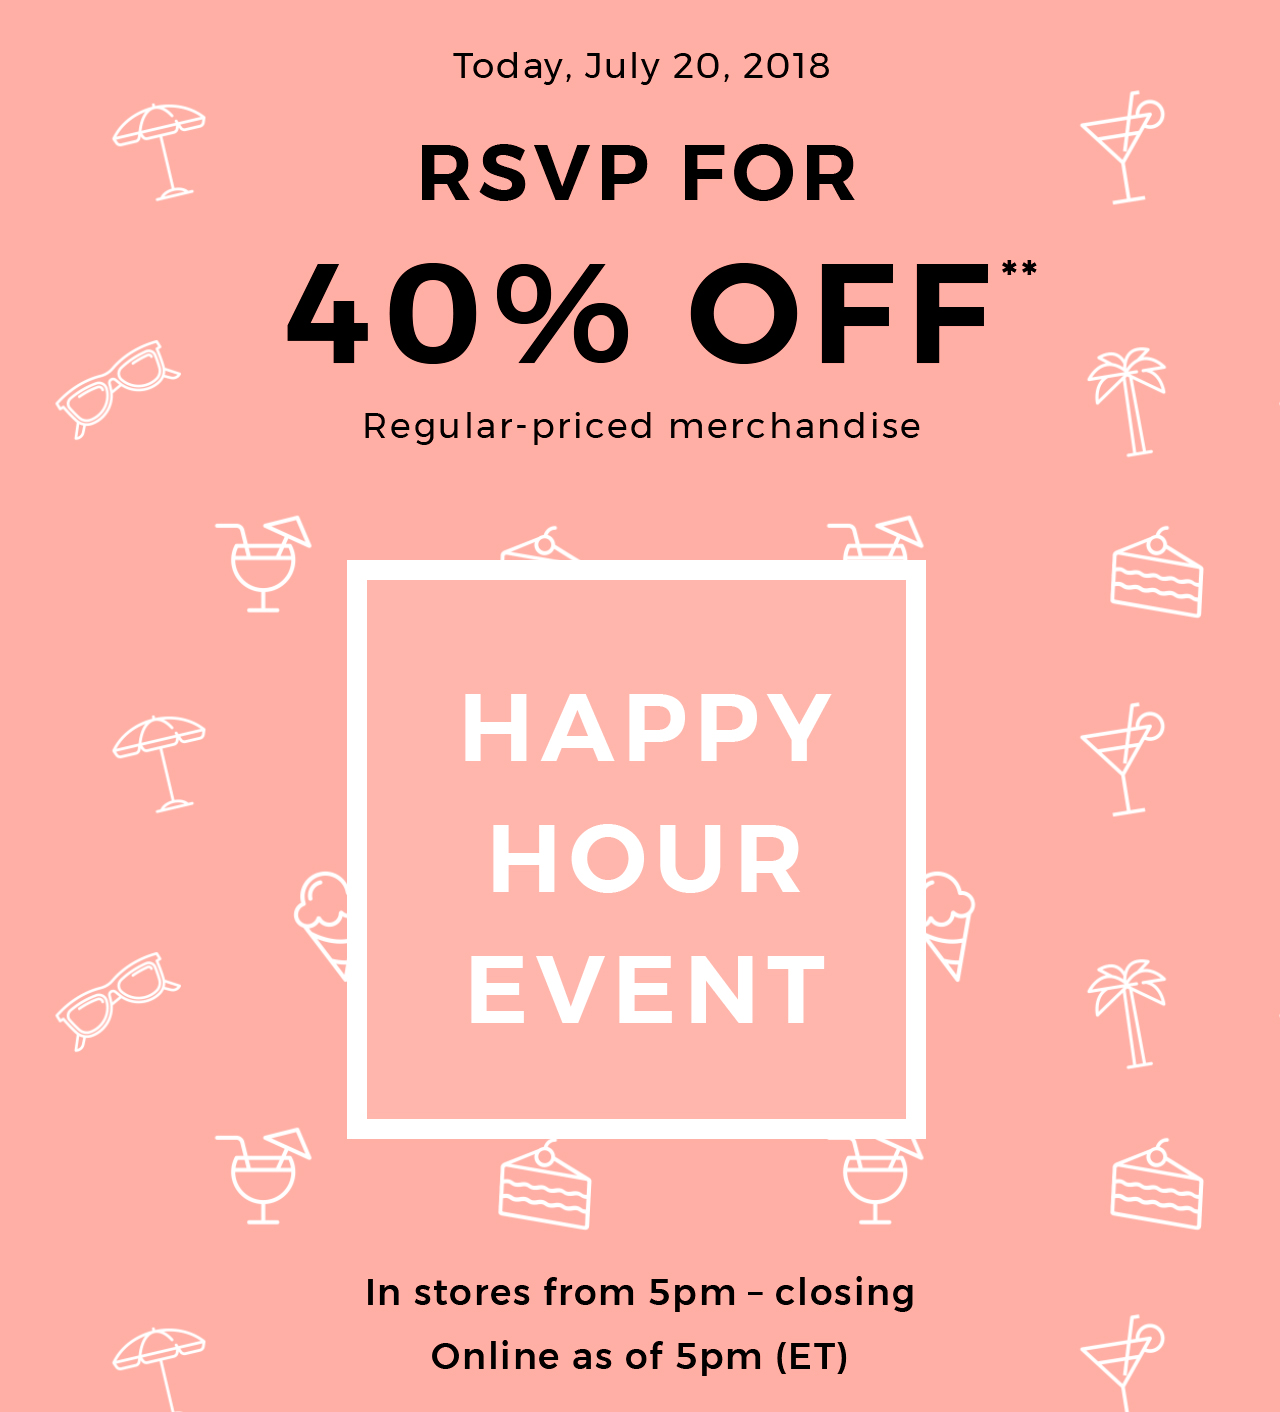 Today, July 20, 2018 Get  40% off  In stores from 5pm-closing and online  from 5pm - midnight Start the weekend off right!